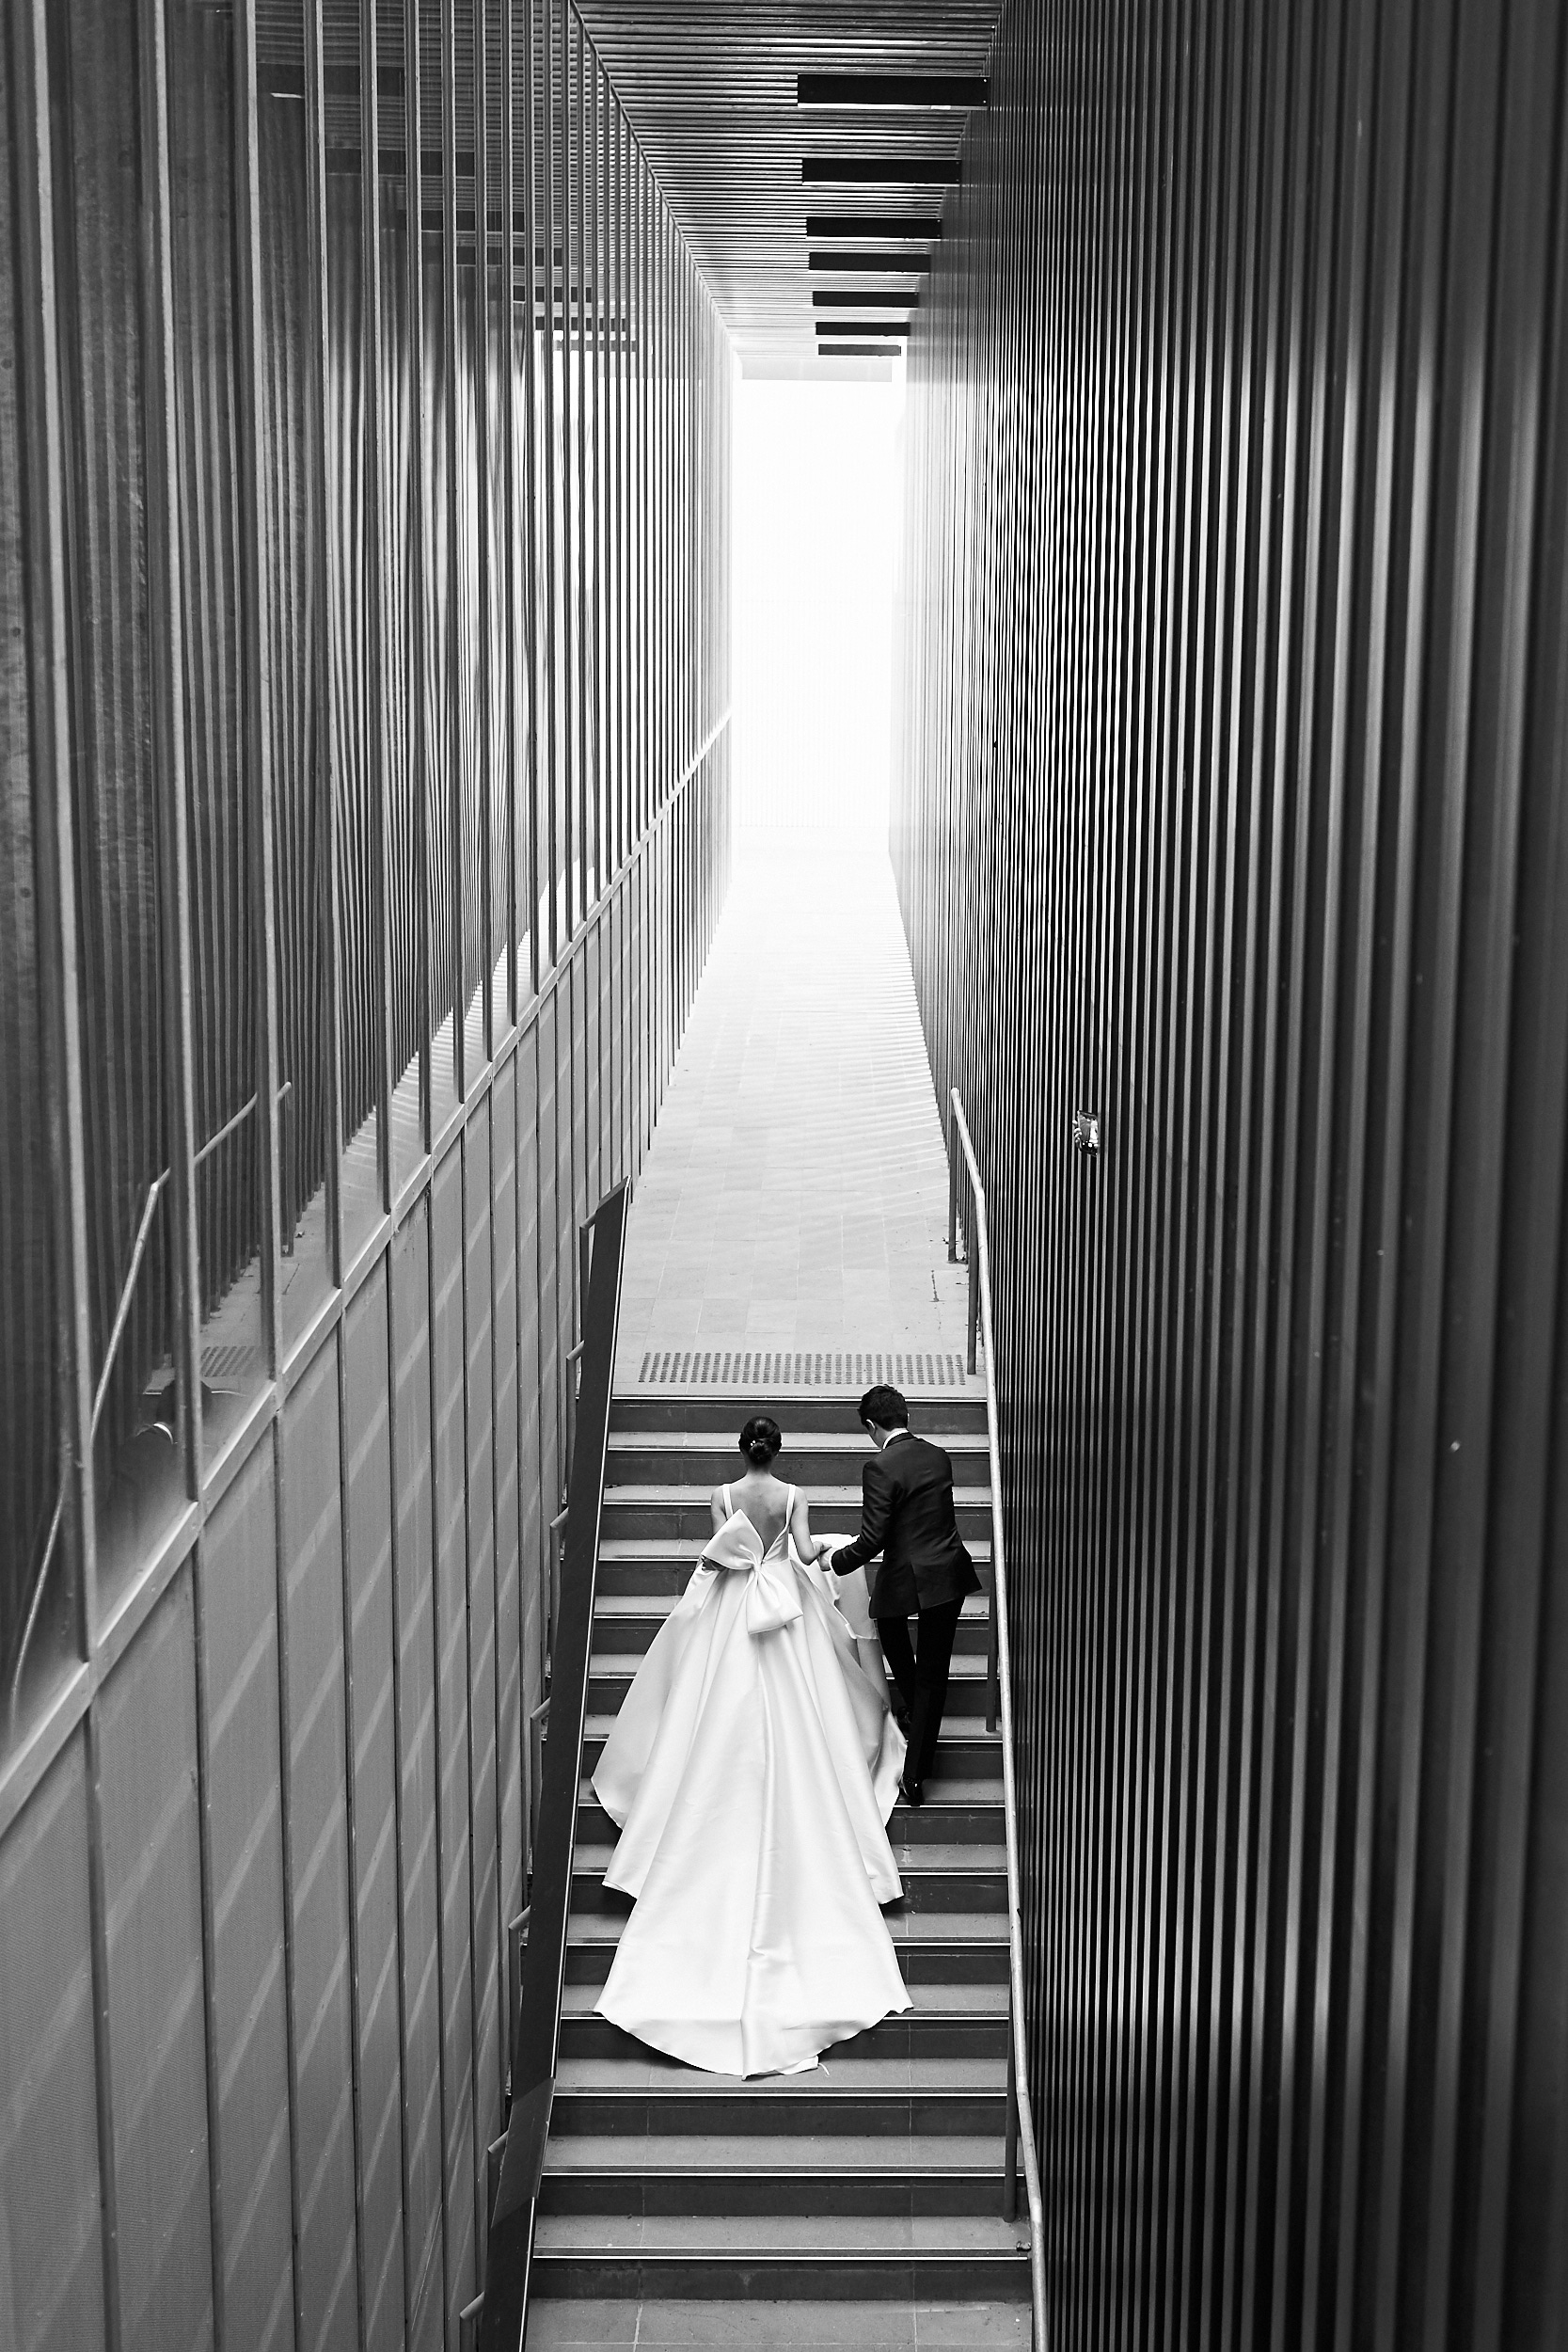 Simples Wedding Dress by Jason Grech. Wedding Photo by lost in love photography